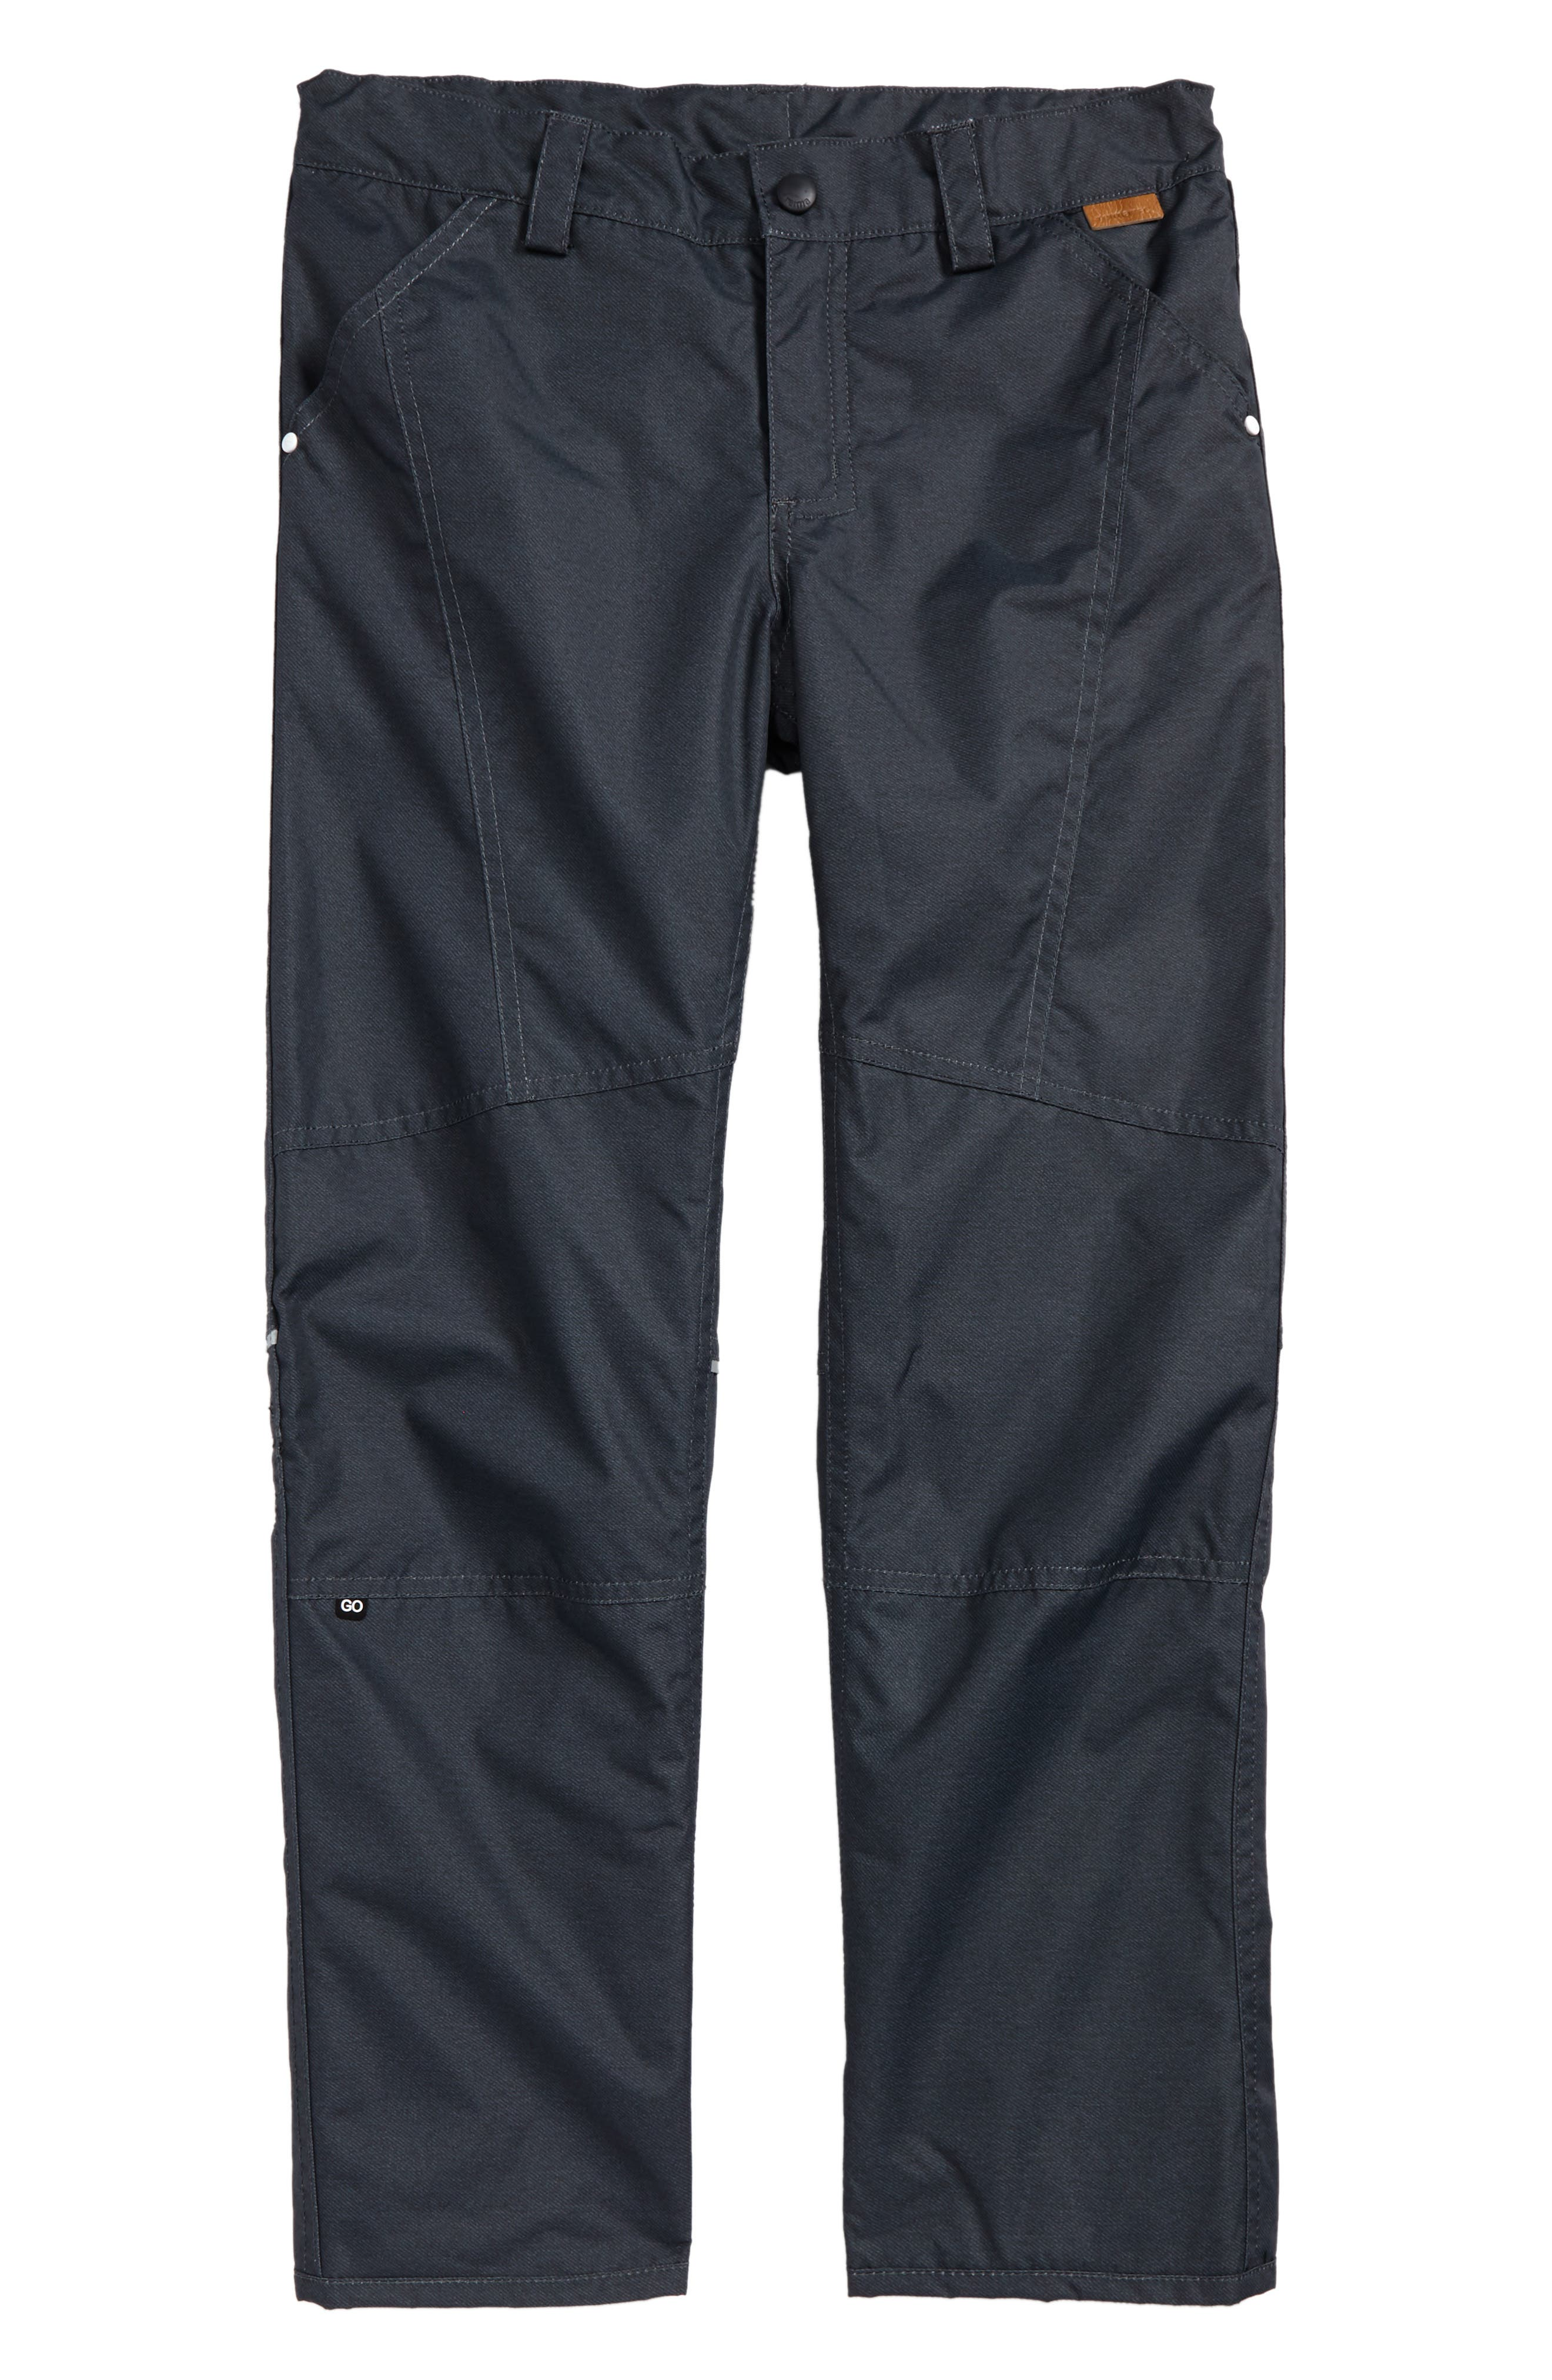 Alternate Image 1 Selected - Reima Reimatec® Waterproof Pants (Big Boys)